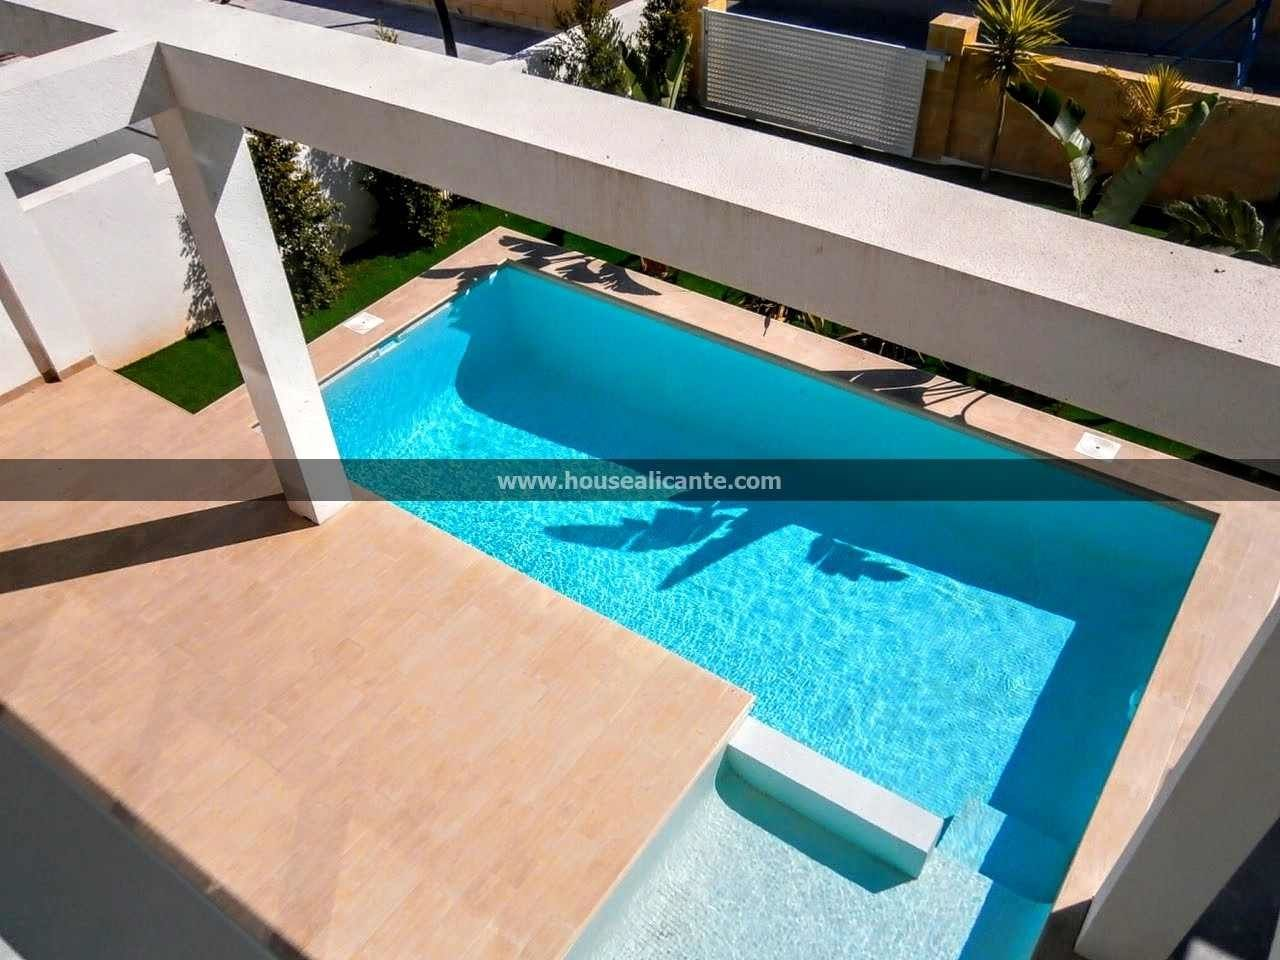 Casa  Residential area close to services. Villa with private pool